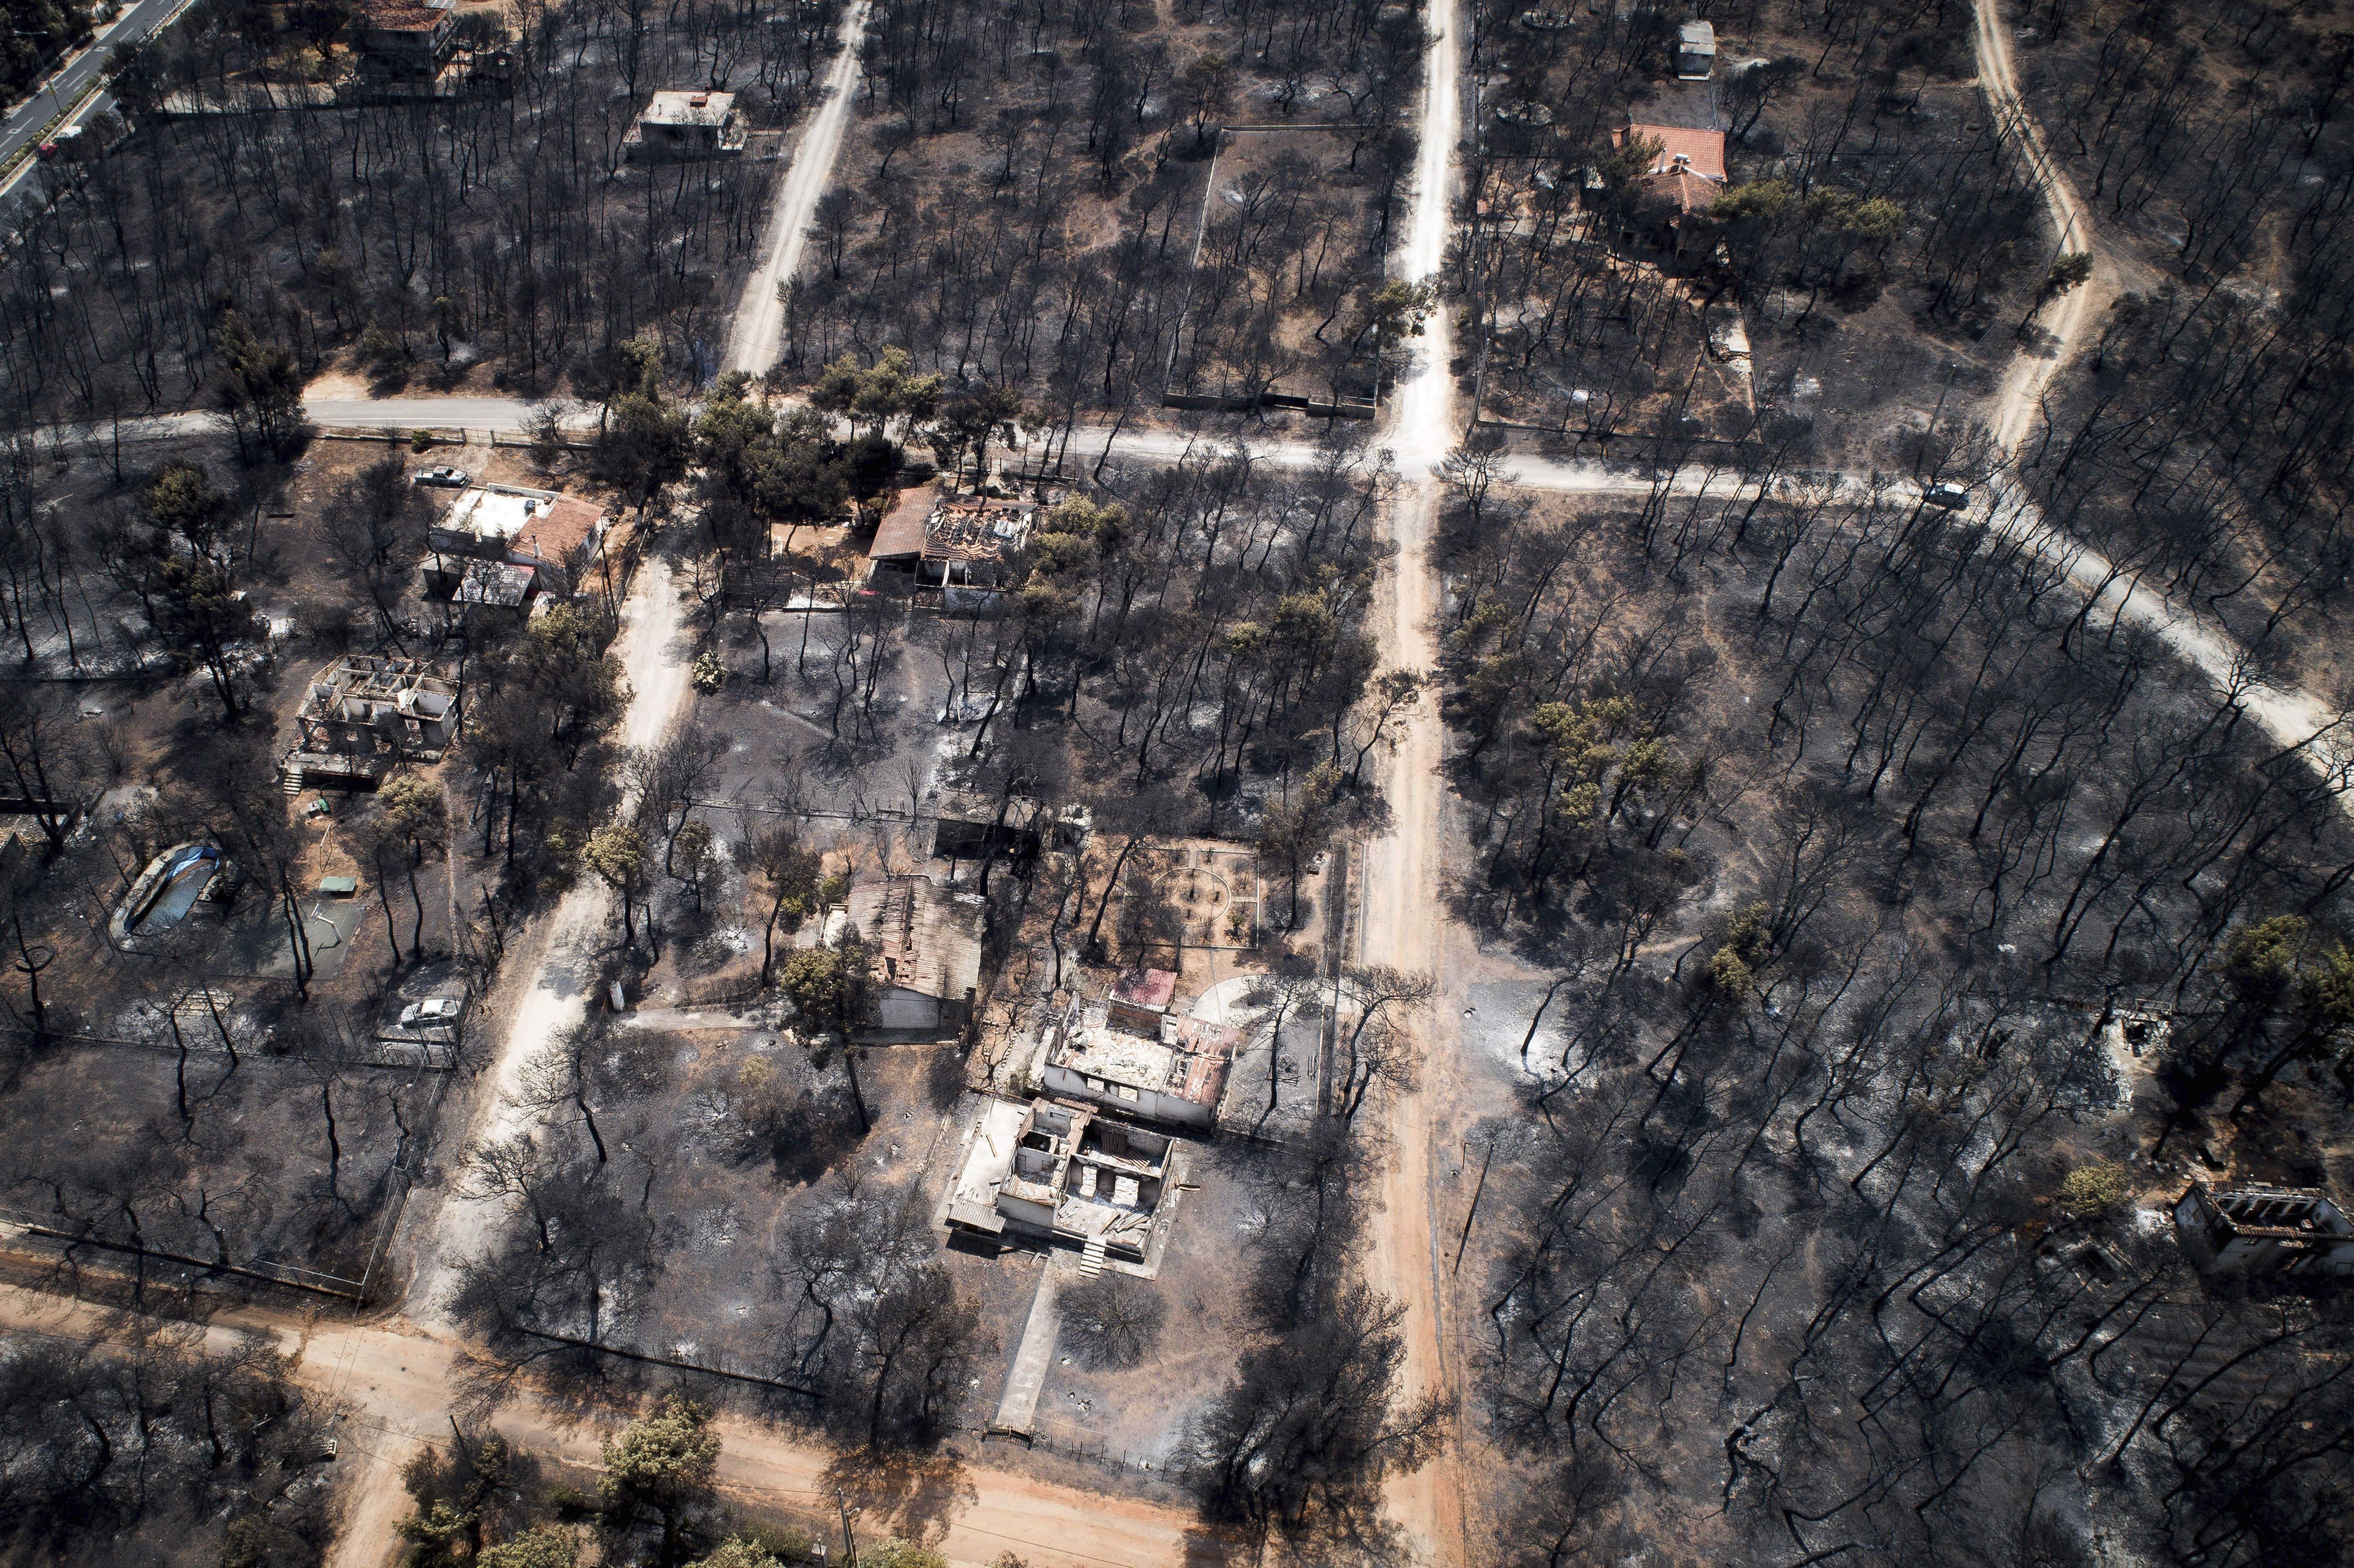 <p>An aerial photo shows burnt houses and trees following a wildfire in Mati, east of Athens on July 25, 2018. (Photo: Antonis Nikolopoulos/Eurokinissi via AP) </p>